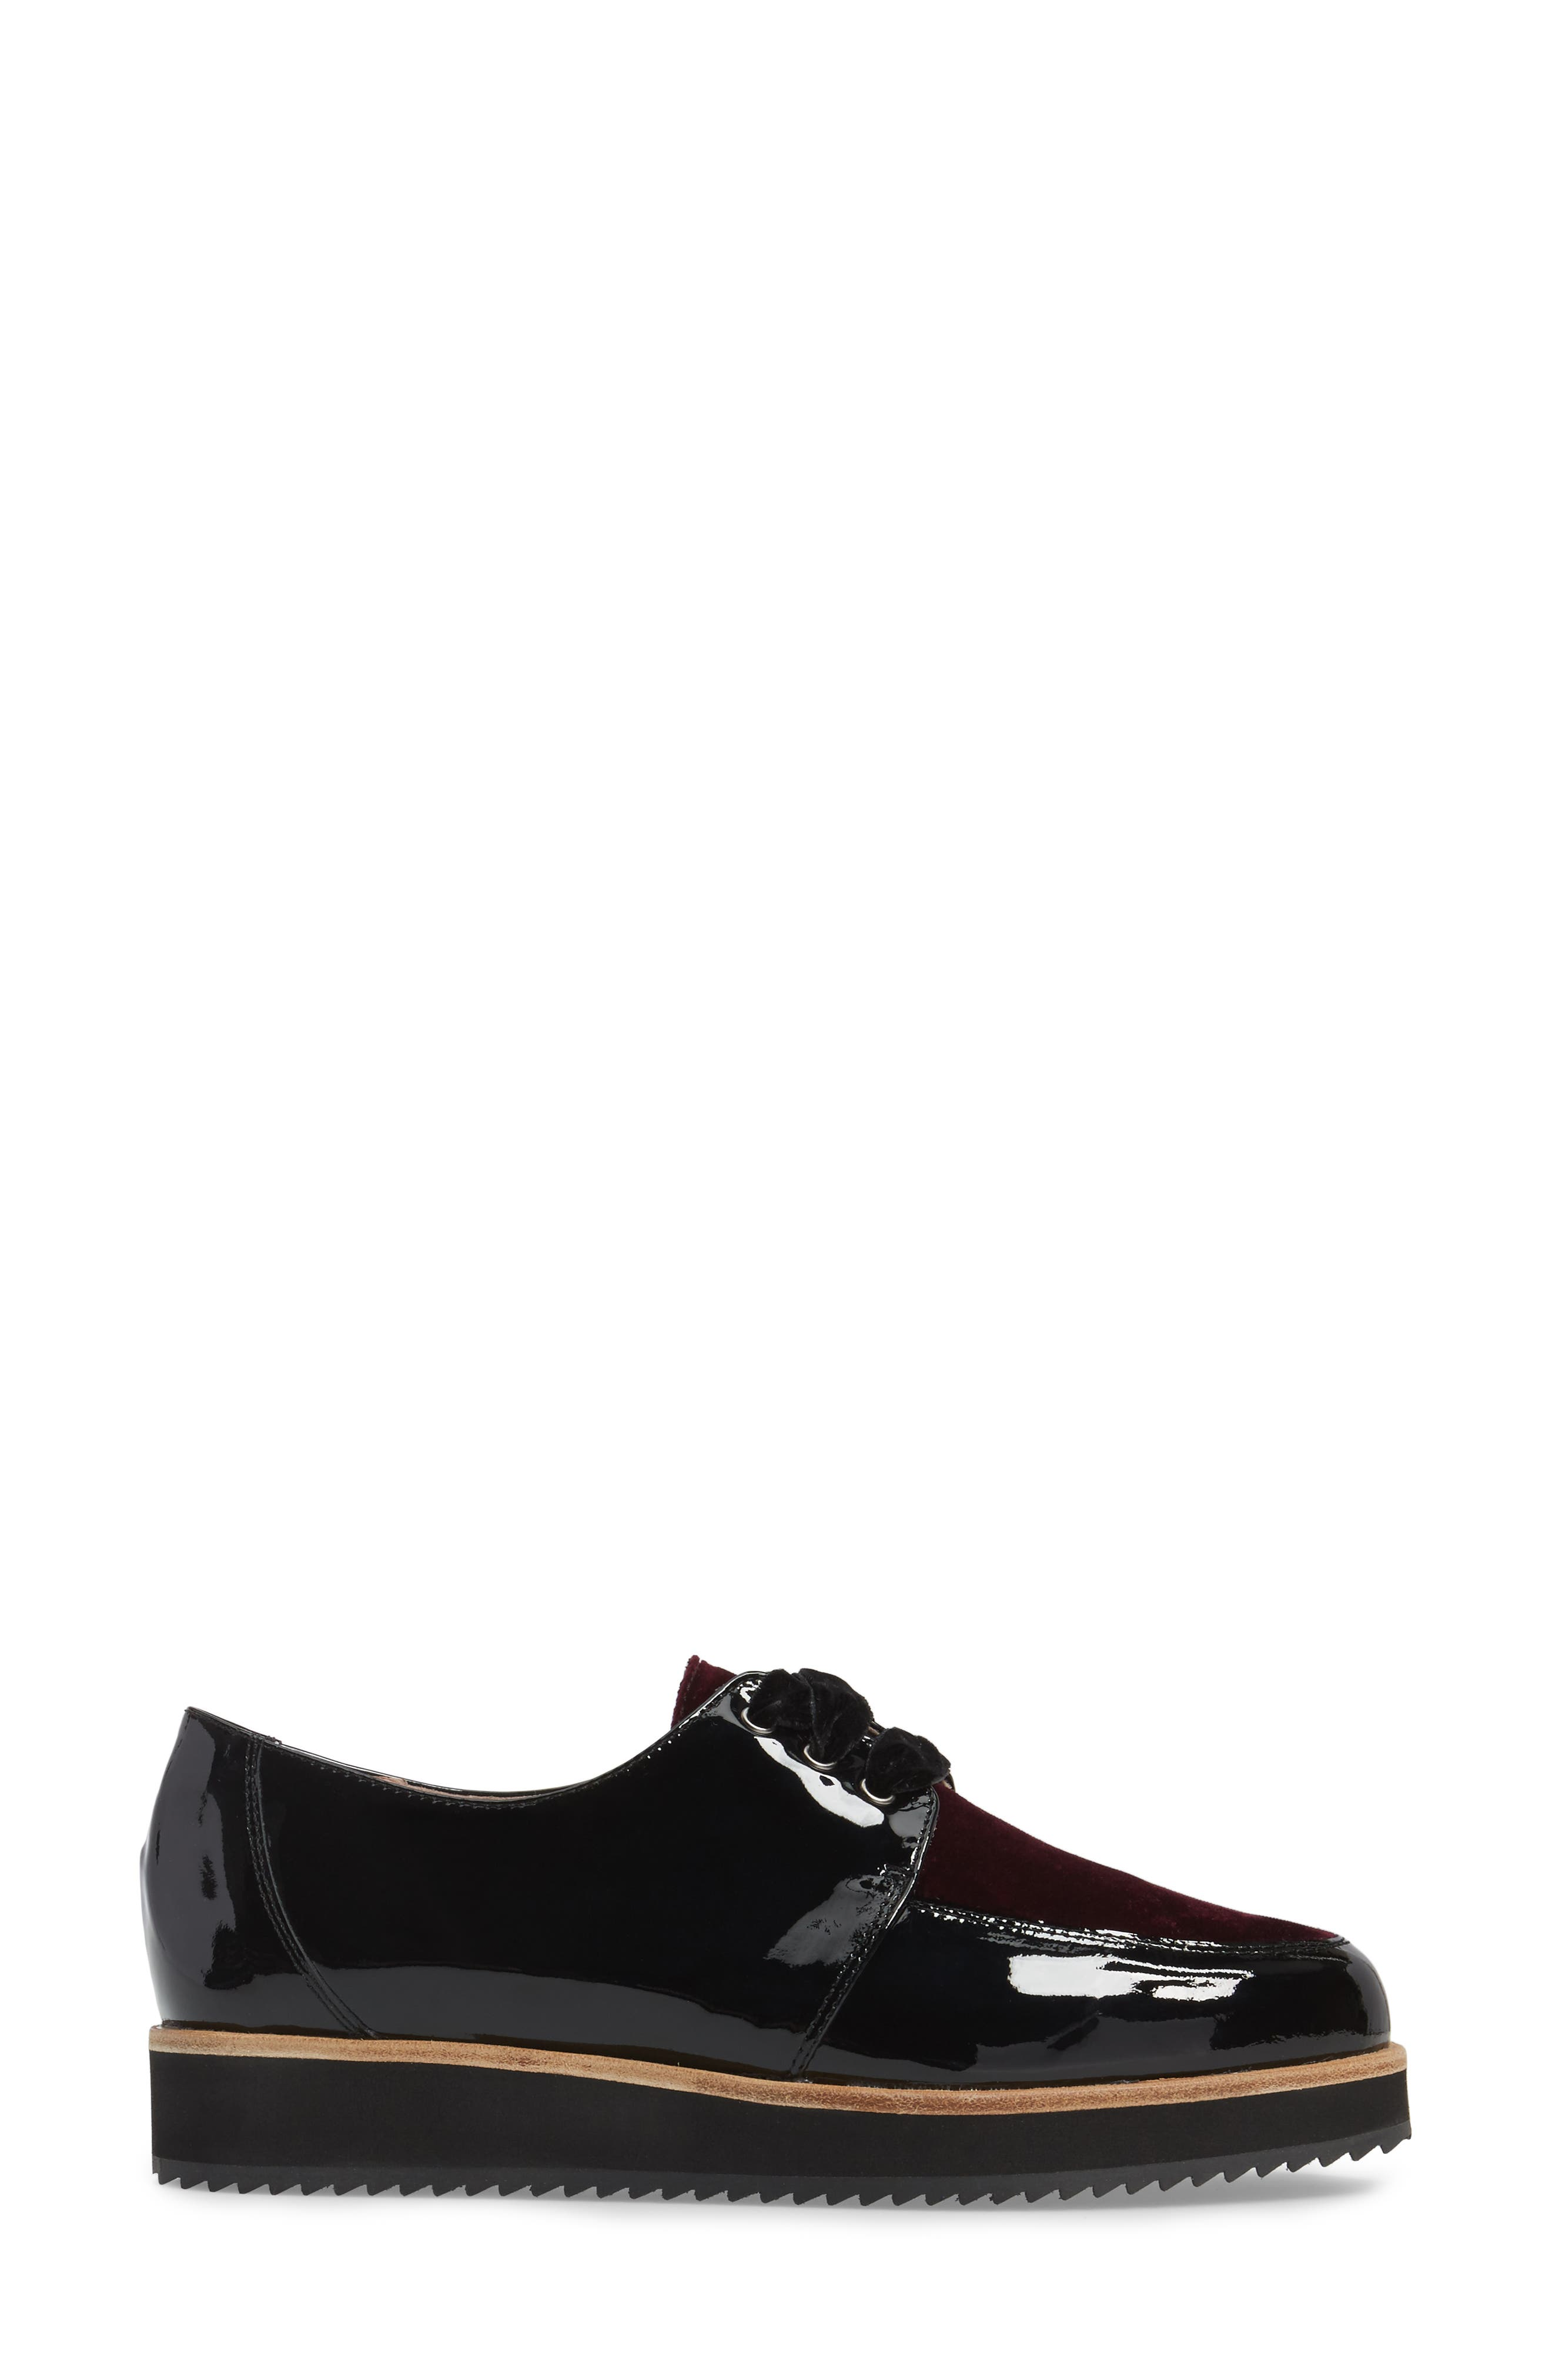 Reese Platform Oxford,                             Alternate thumbnail 3, color,                             Burgundy Patent